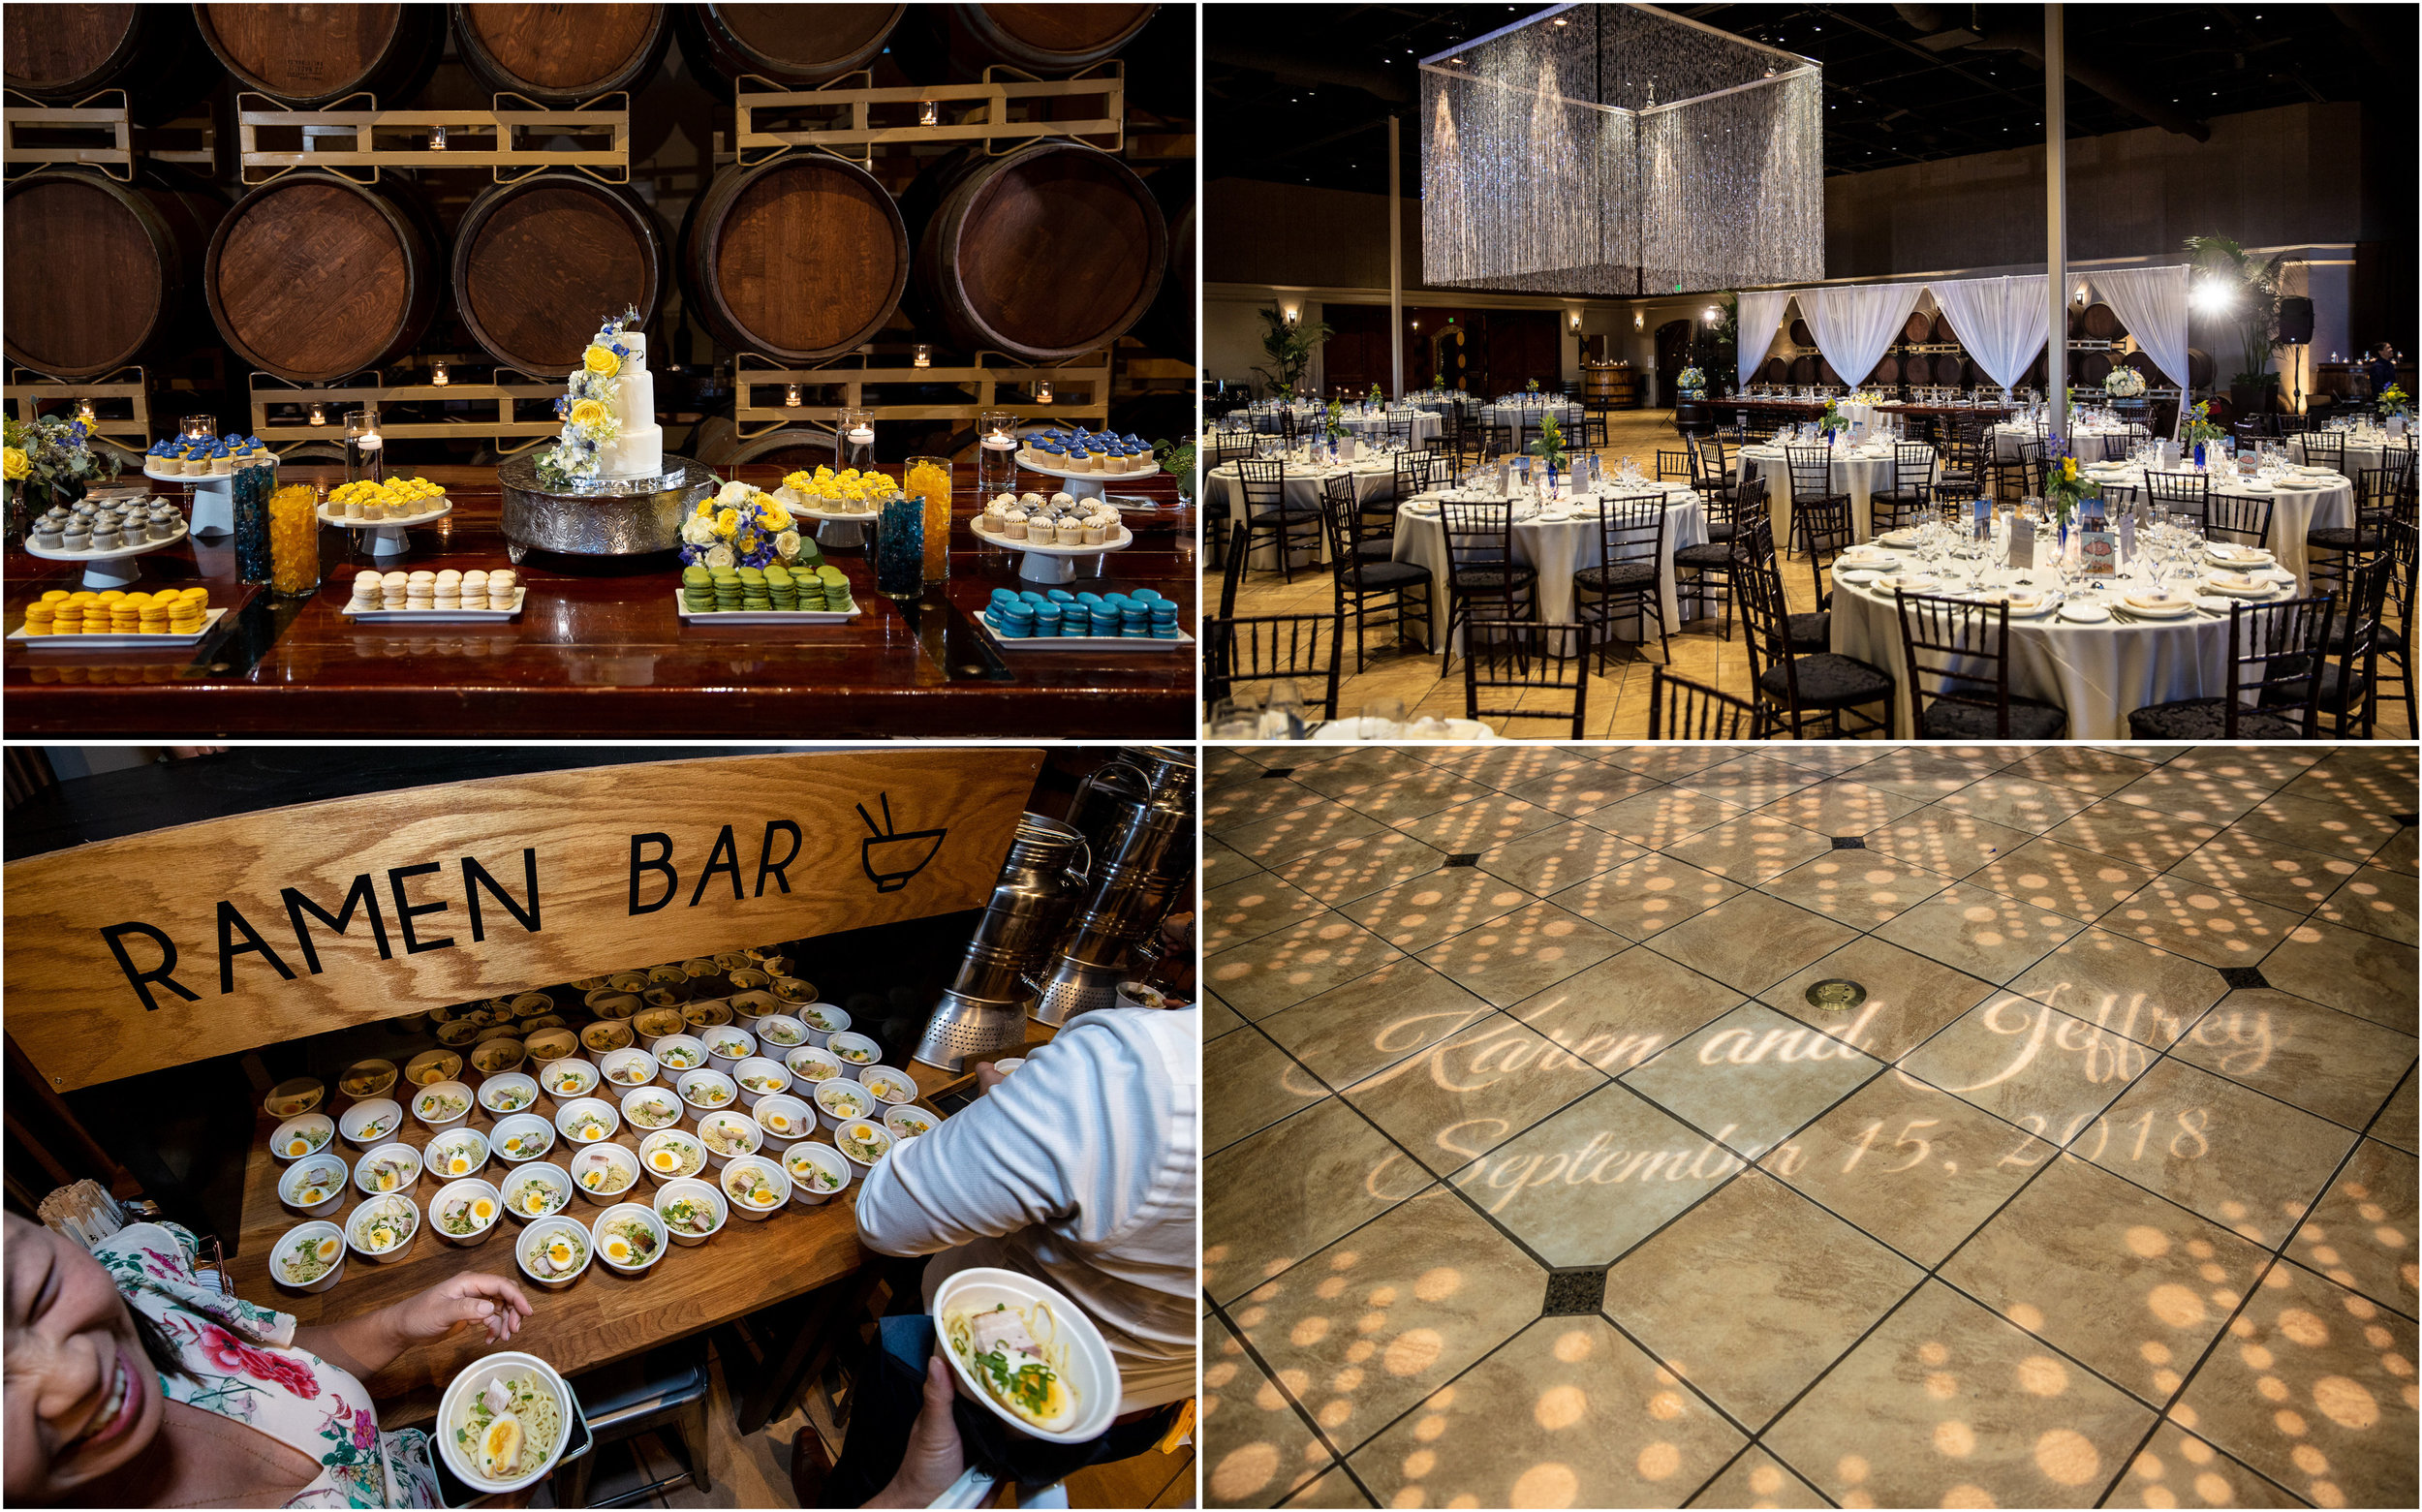 The Palm Event Center reception was large enough to host a large guest list and also allowed room for creative wedding ideas like a dessert table and even a ramen bar! WHAT!?